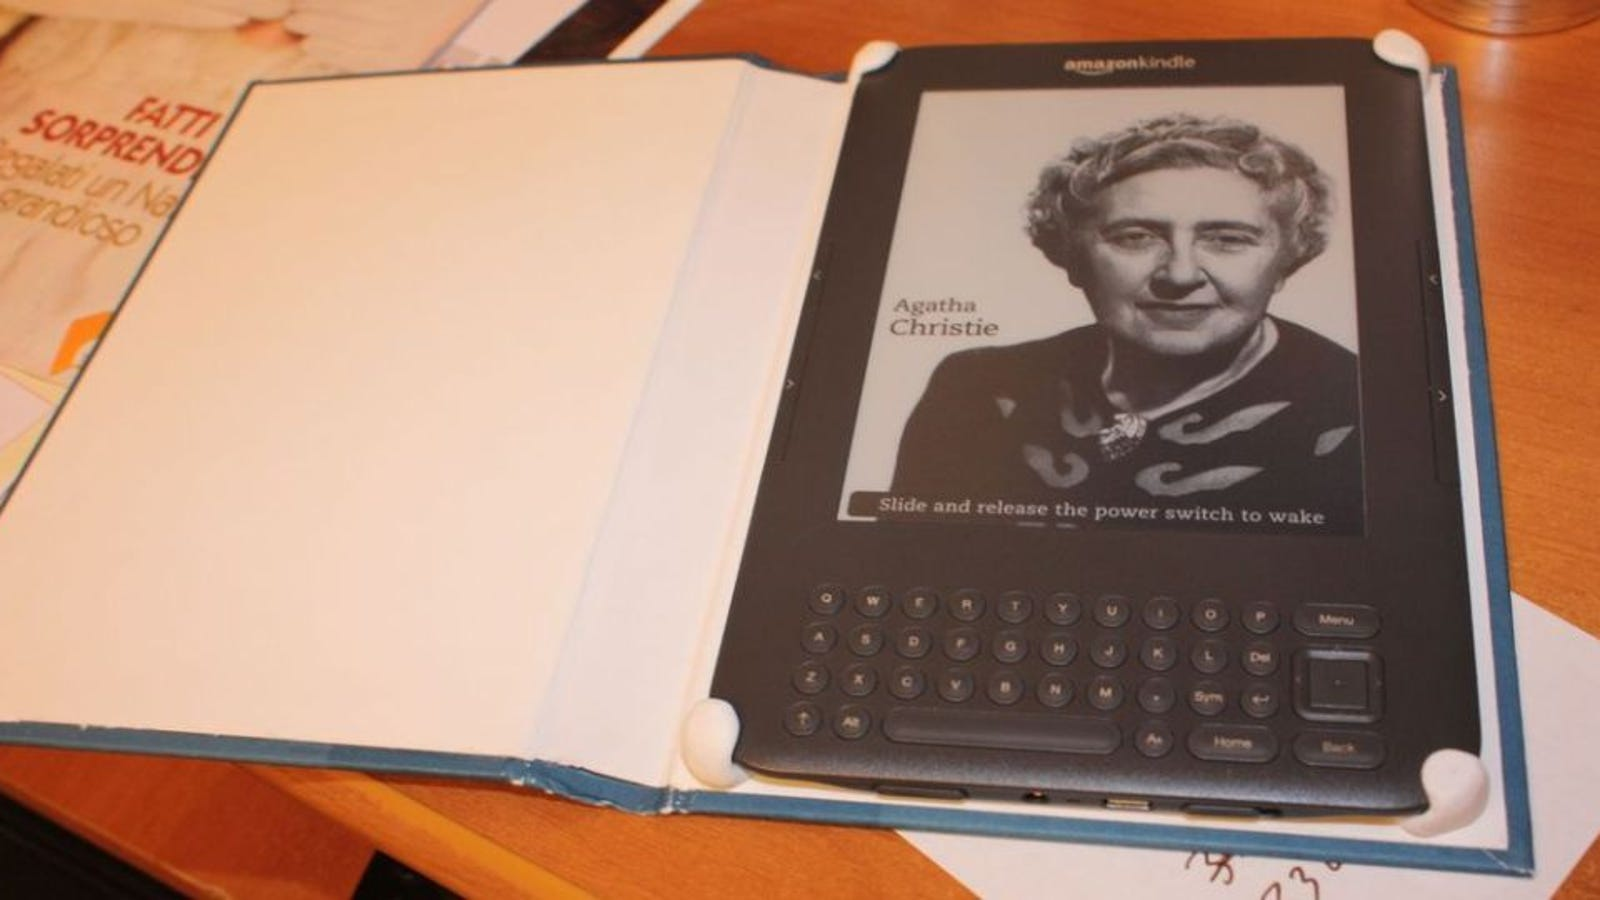 Change Book Cover Diy : Turn an old book cover into a tablet or ereader case with